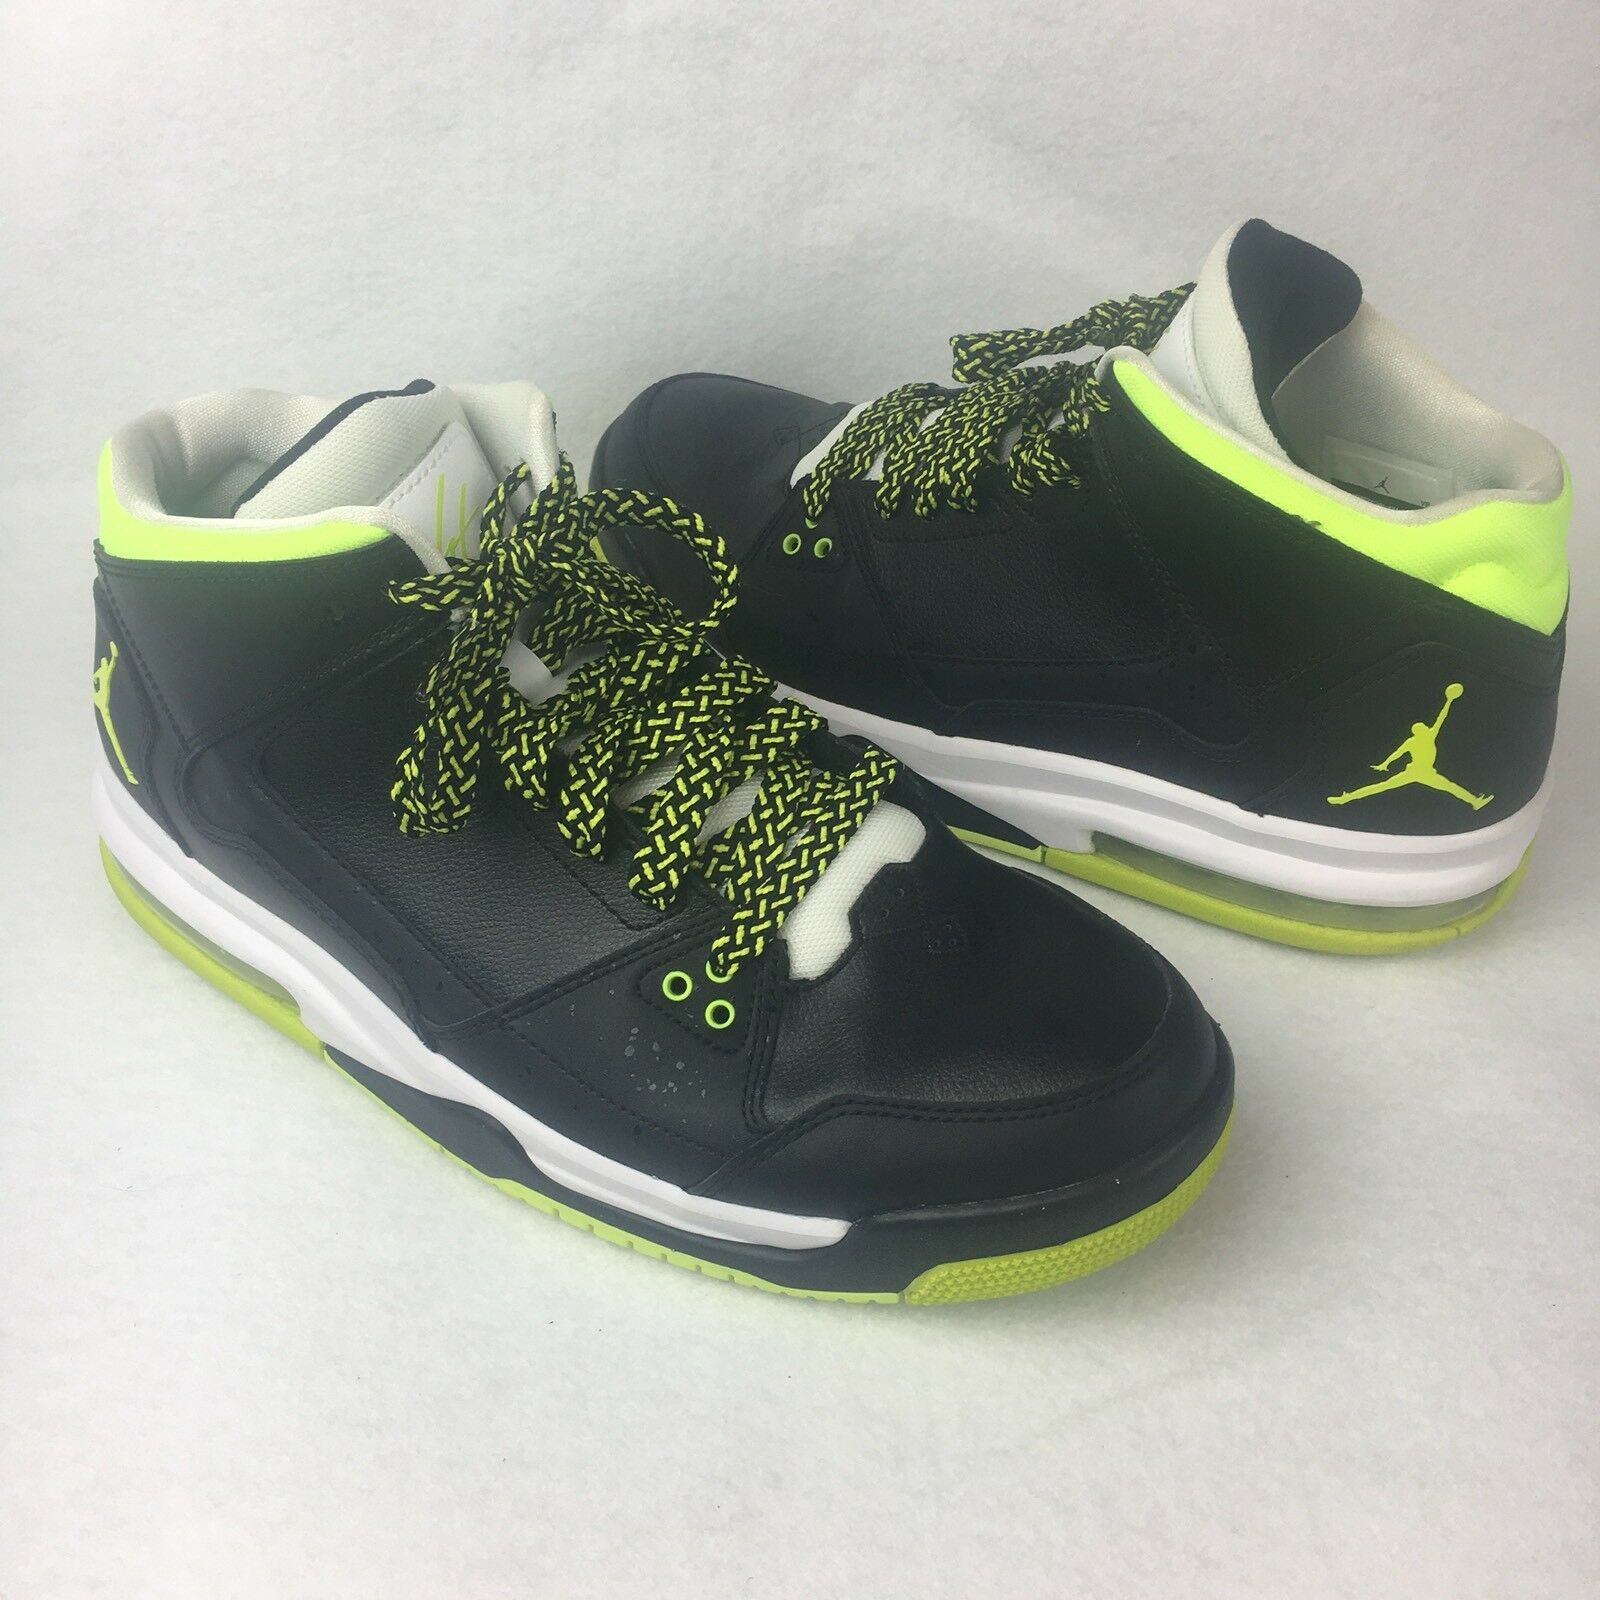 Mens Nike Jordan 599593-016 Flight 2013 Excellent Condition Comfortable New shoes for men and women, limited time discount